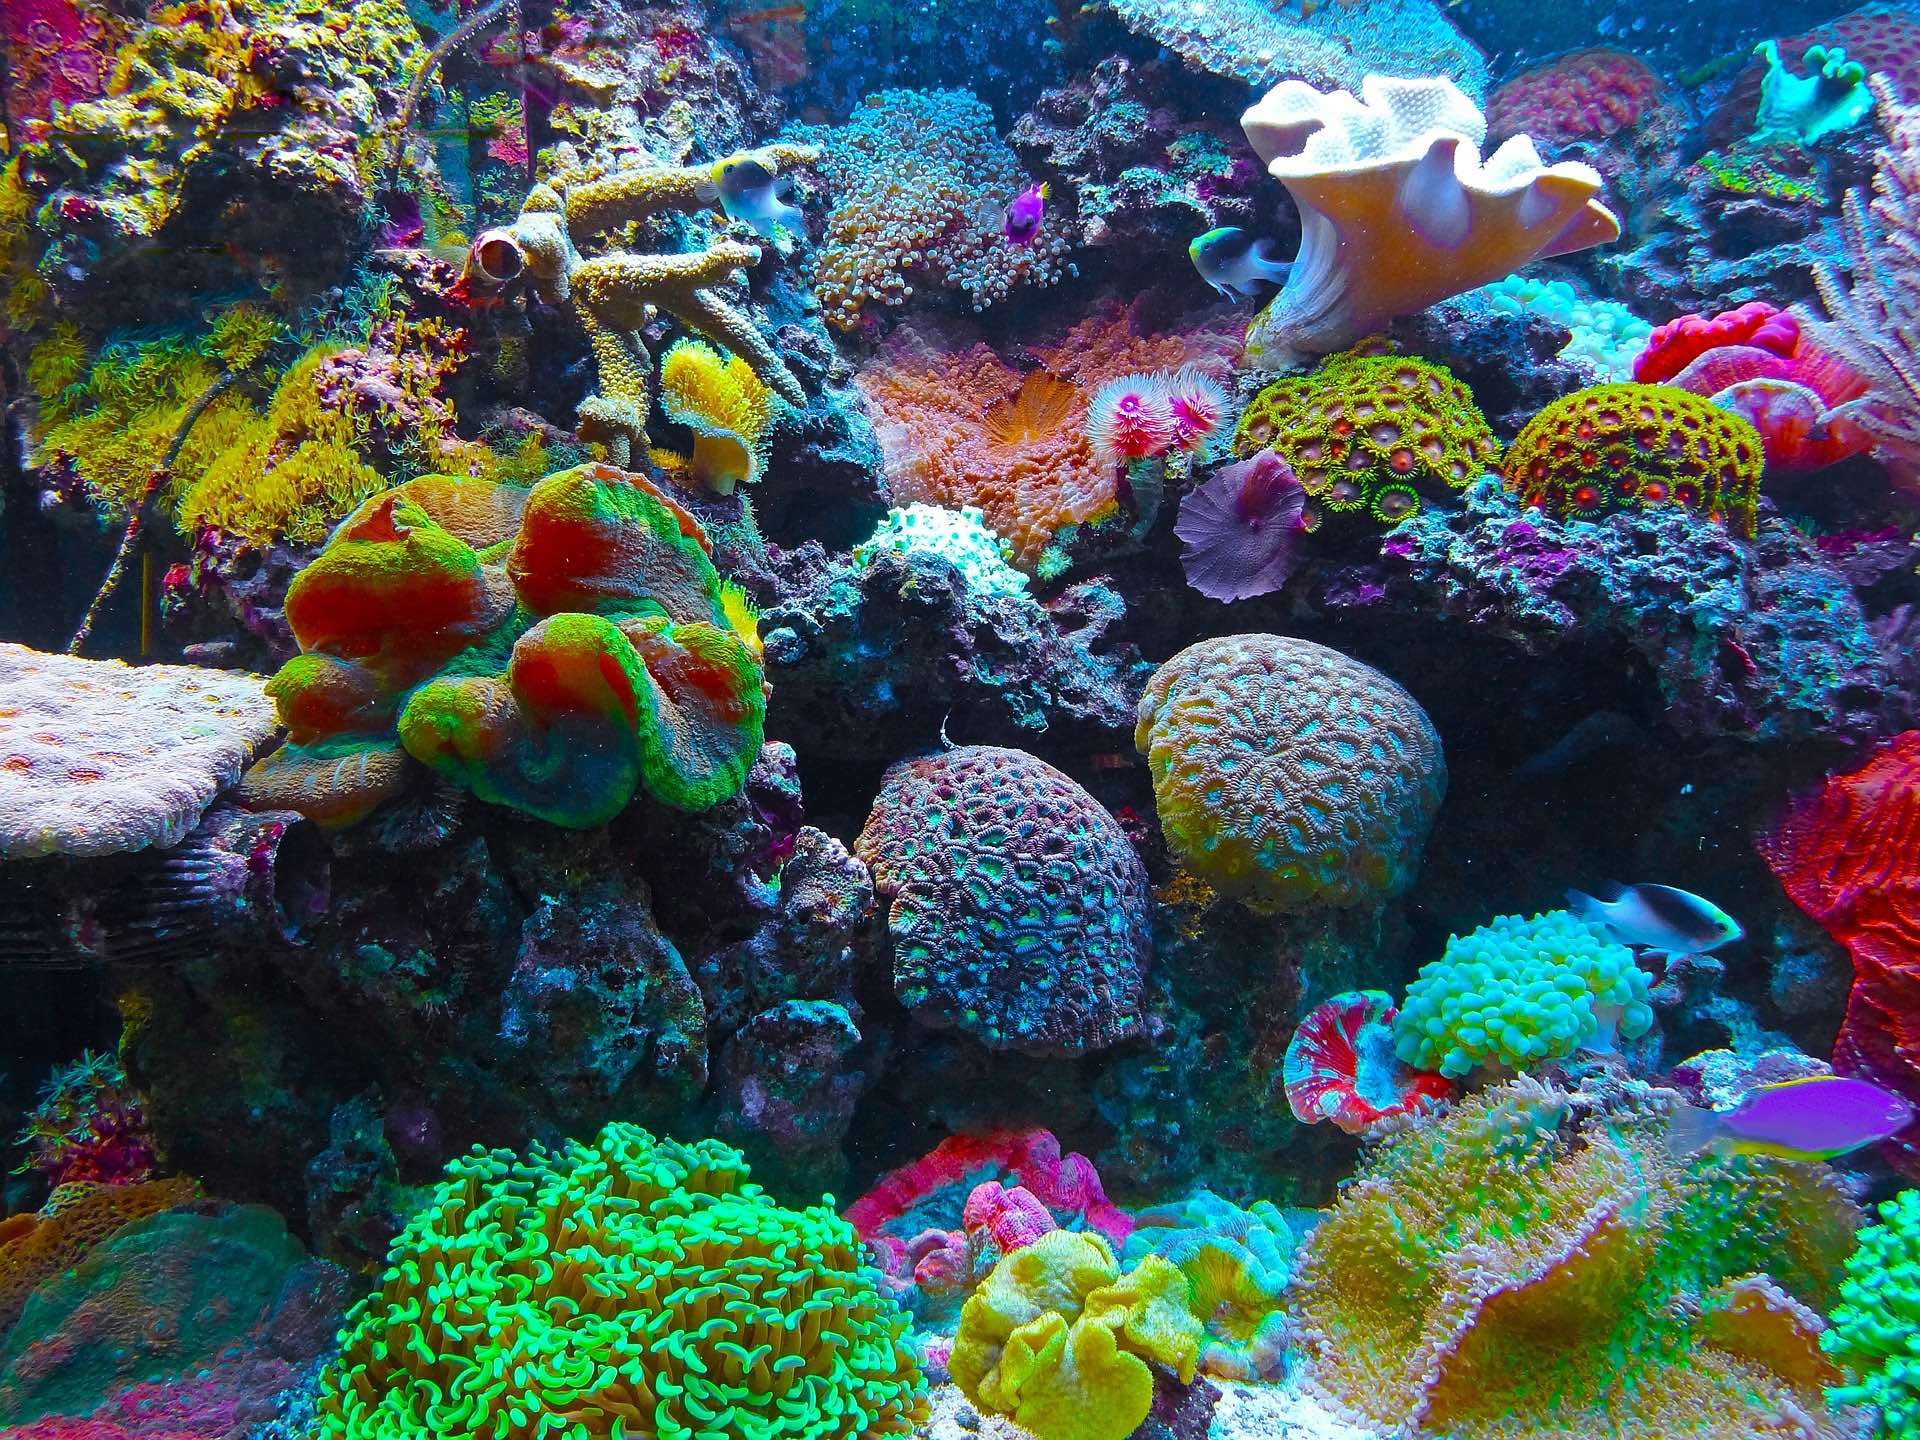 At nearly 1 million hectares, the Tun Mustapha Park includes coral reefs, mangrove, seagrass and productive fishing grounds spread across more than 50 islands and islets. Photo source: Pixabay, public domain.